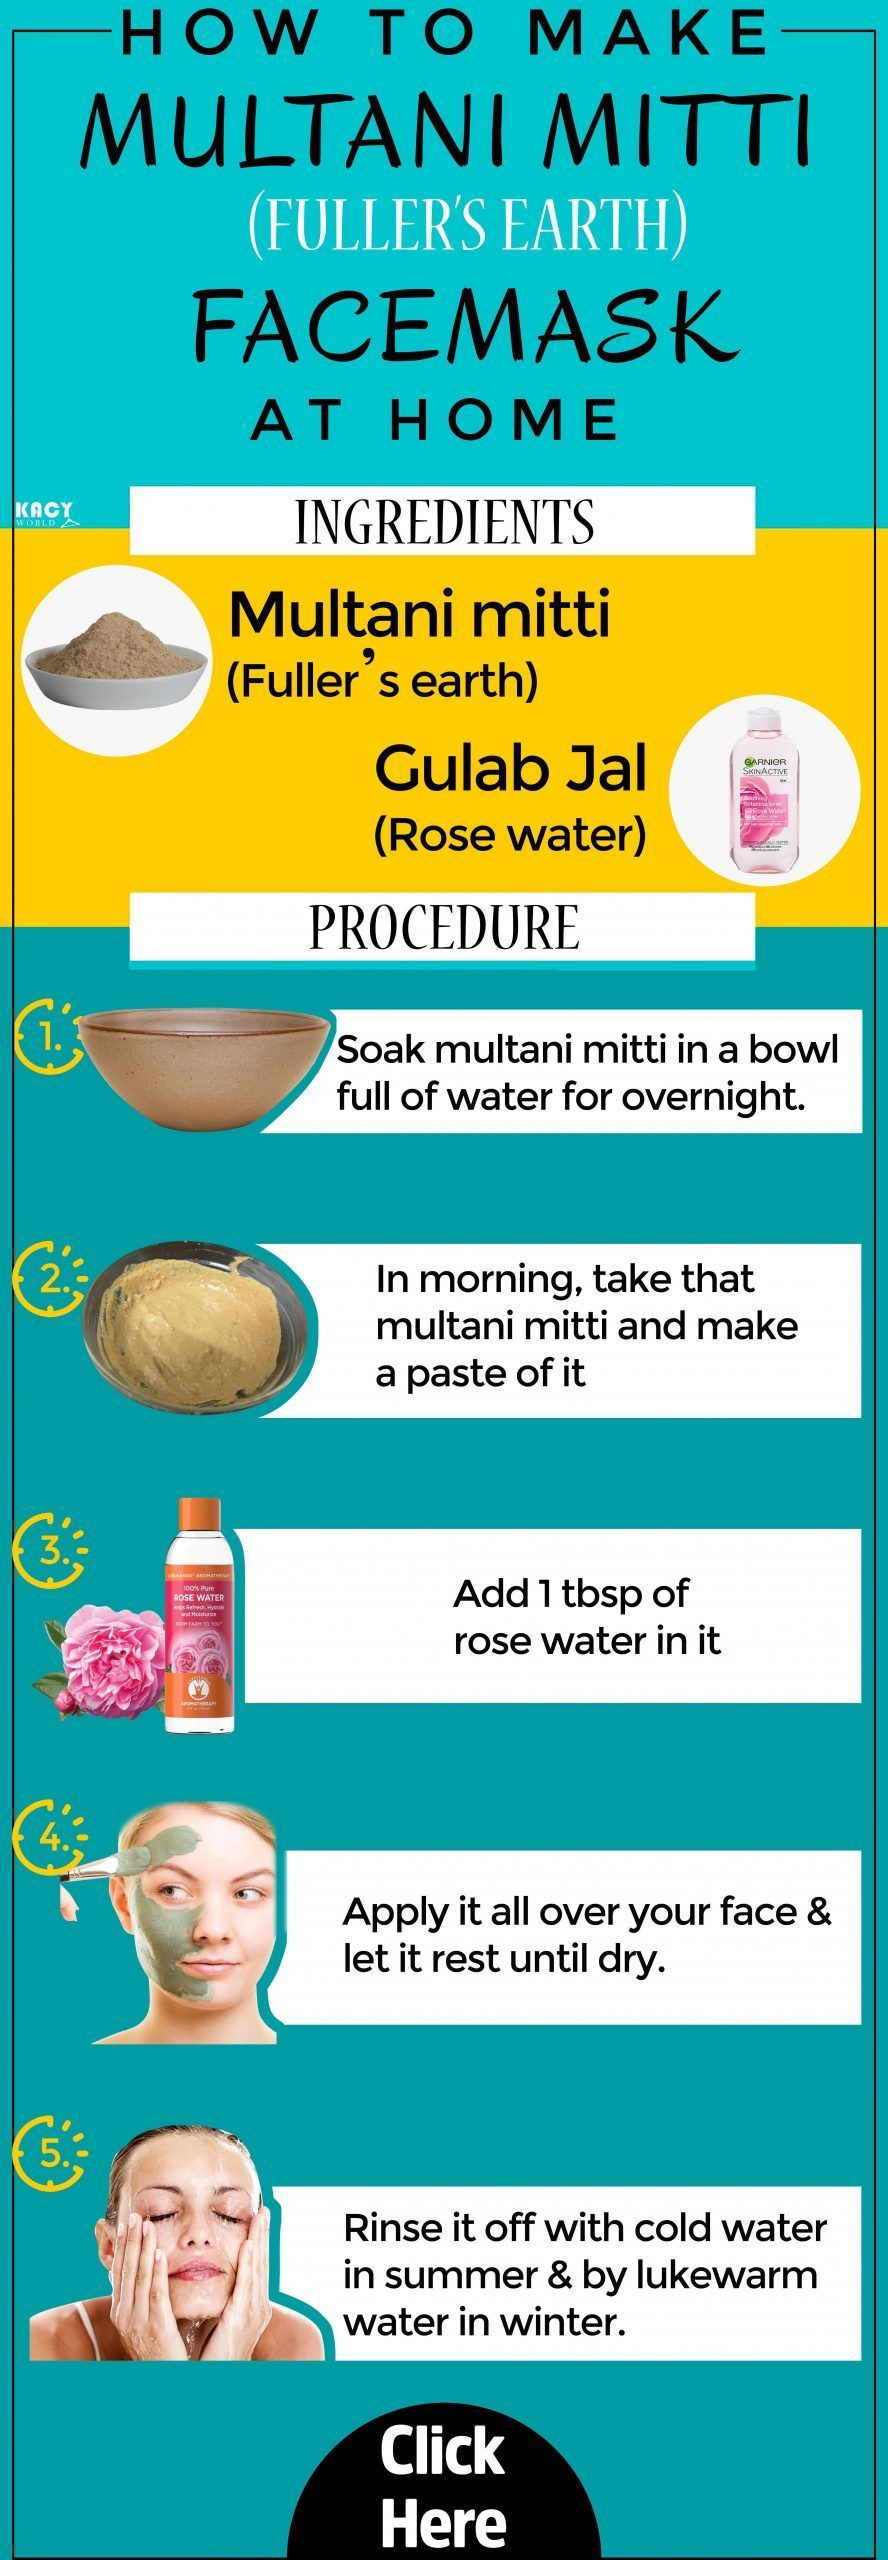 #DIY #earth #Face #face mask for pores diy #Fullers #Glowing #kacdiy #Mask #pores #earth #Face #face mask for pores diy #Fullers #Glowing #kac#diy